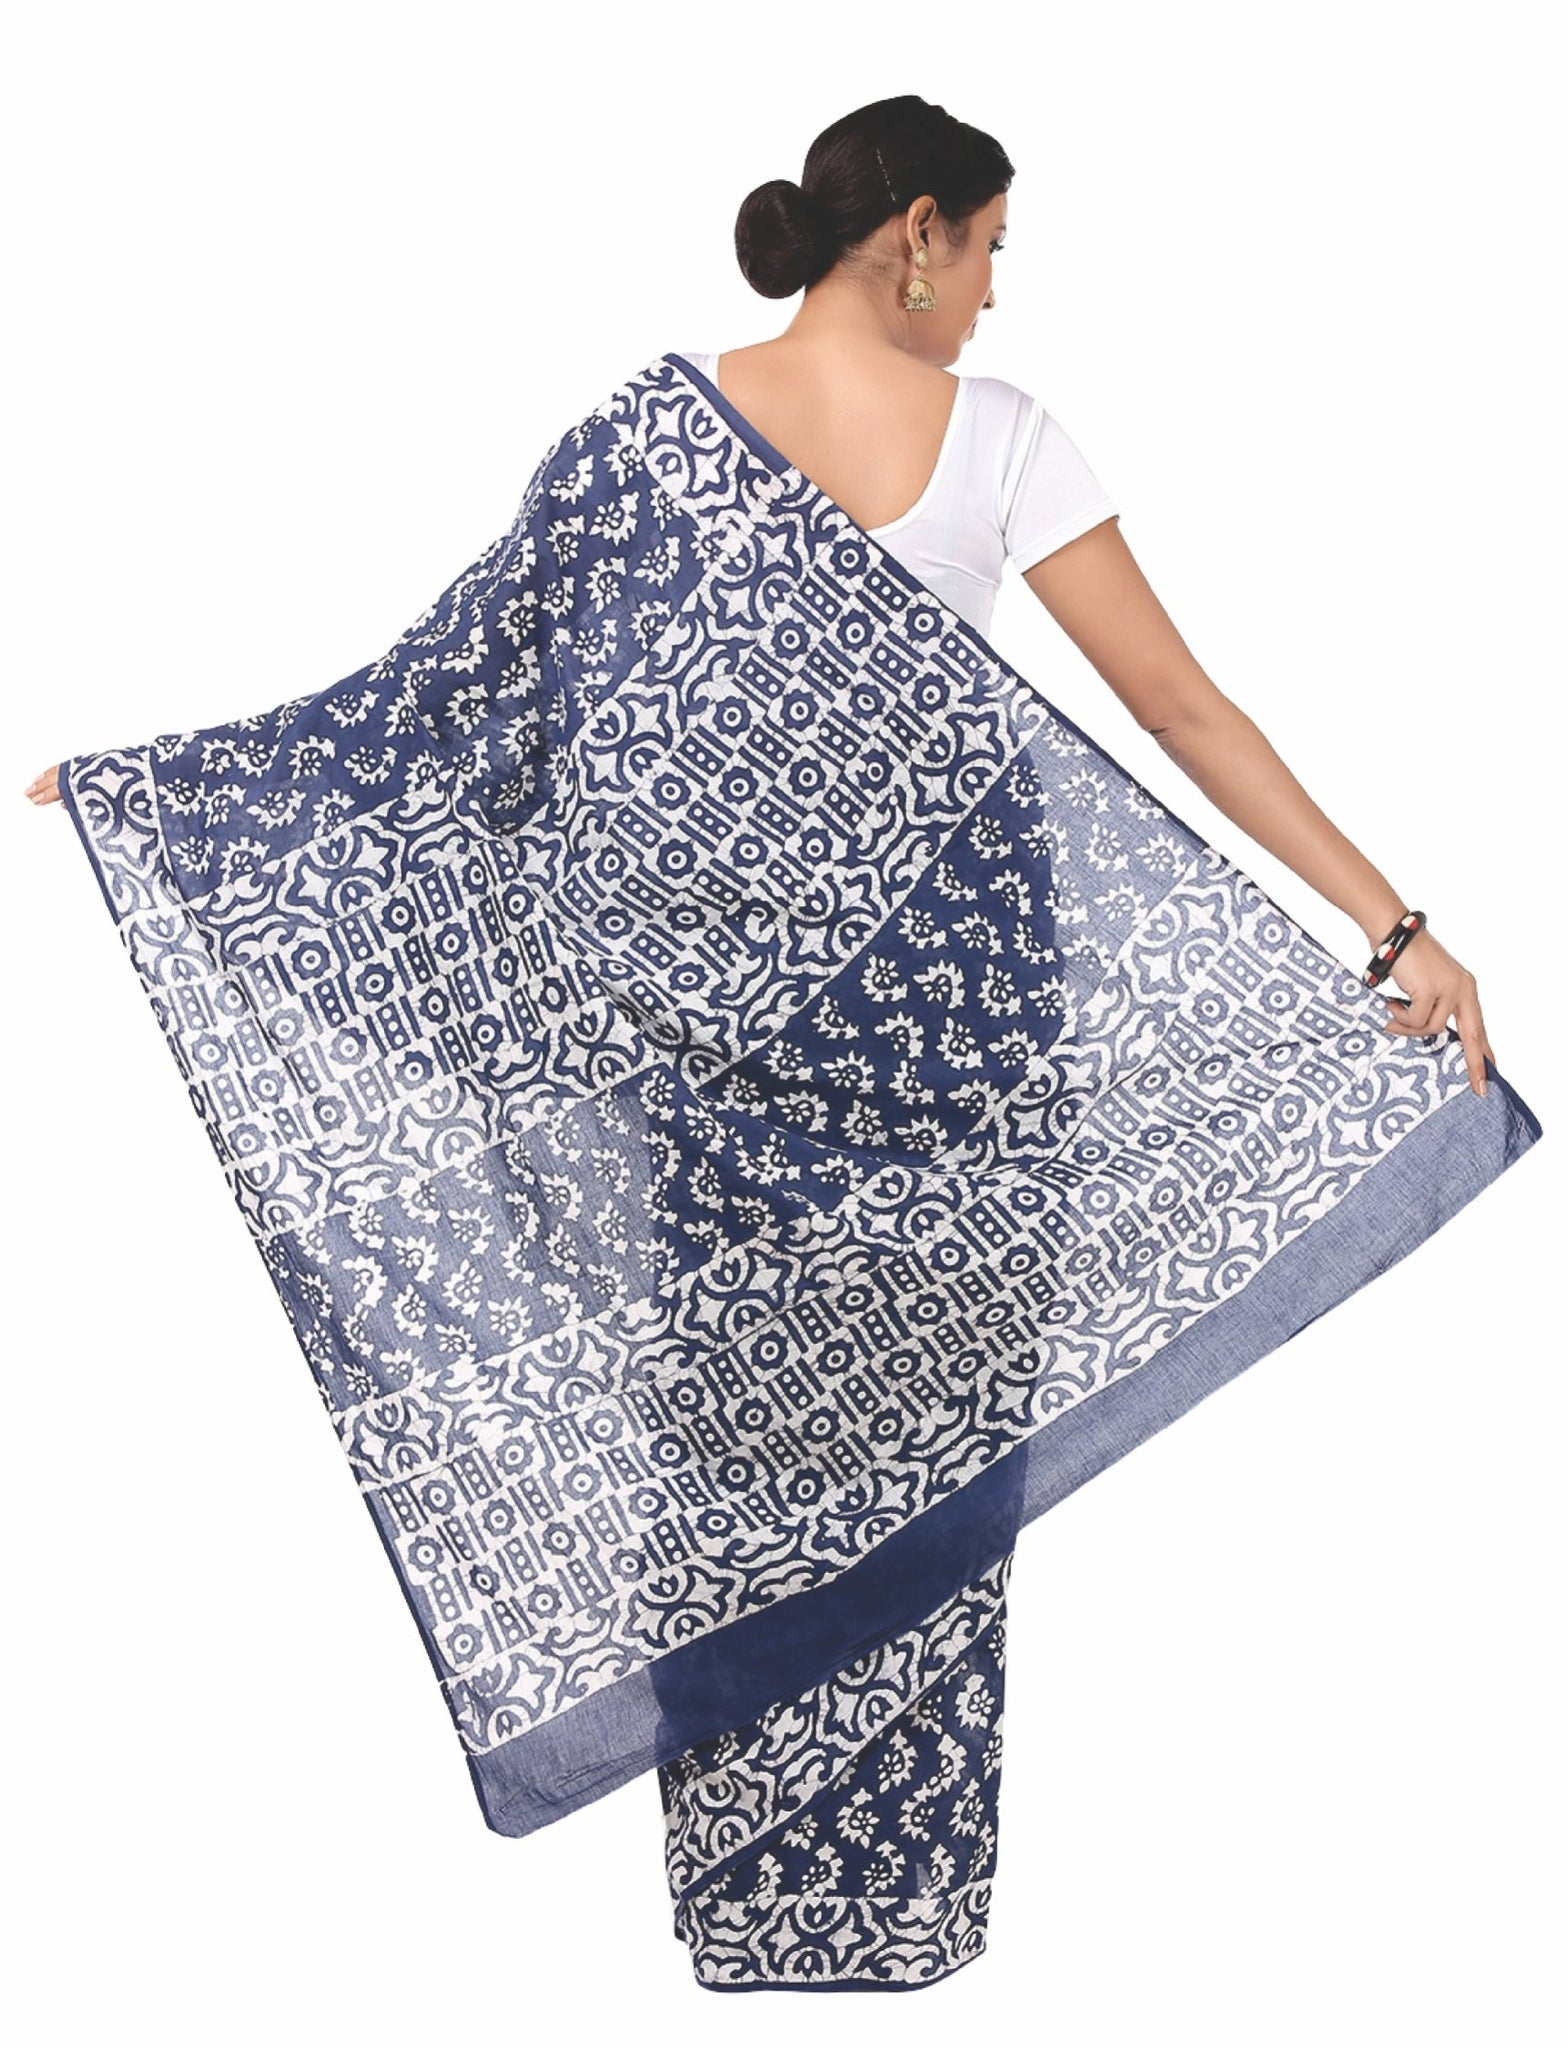 Blue & White Kalamkari Hand Block Print Handcrafted Cotton Saree-Saree-Kalakari India-RDSNSA0042-Batik, Cotton, Geographical Indication, Hand Blocks, Hand Crafted, Heritage Prints, kalamkari block, Sarees, Sustainable Fabrics-[Linen,Ethnic,wear,Fashionista,Handloom,Handicraft,Indigo,blockprint,block,print,Cotton,Chanderi,Blue, latest,classy,party,bollywood,trendy,summer,style,traditional,formal,elegant,unique,style,hand,block,print, dabu,booti,gift,present,glamorous,affordable,collectible,Sari,S